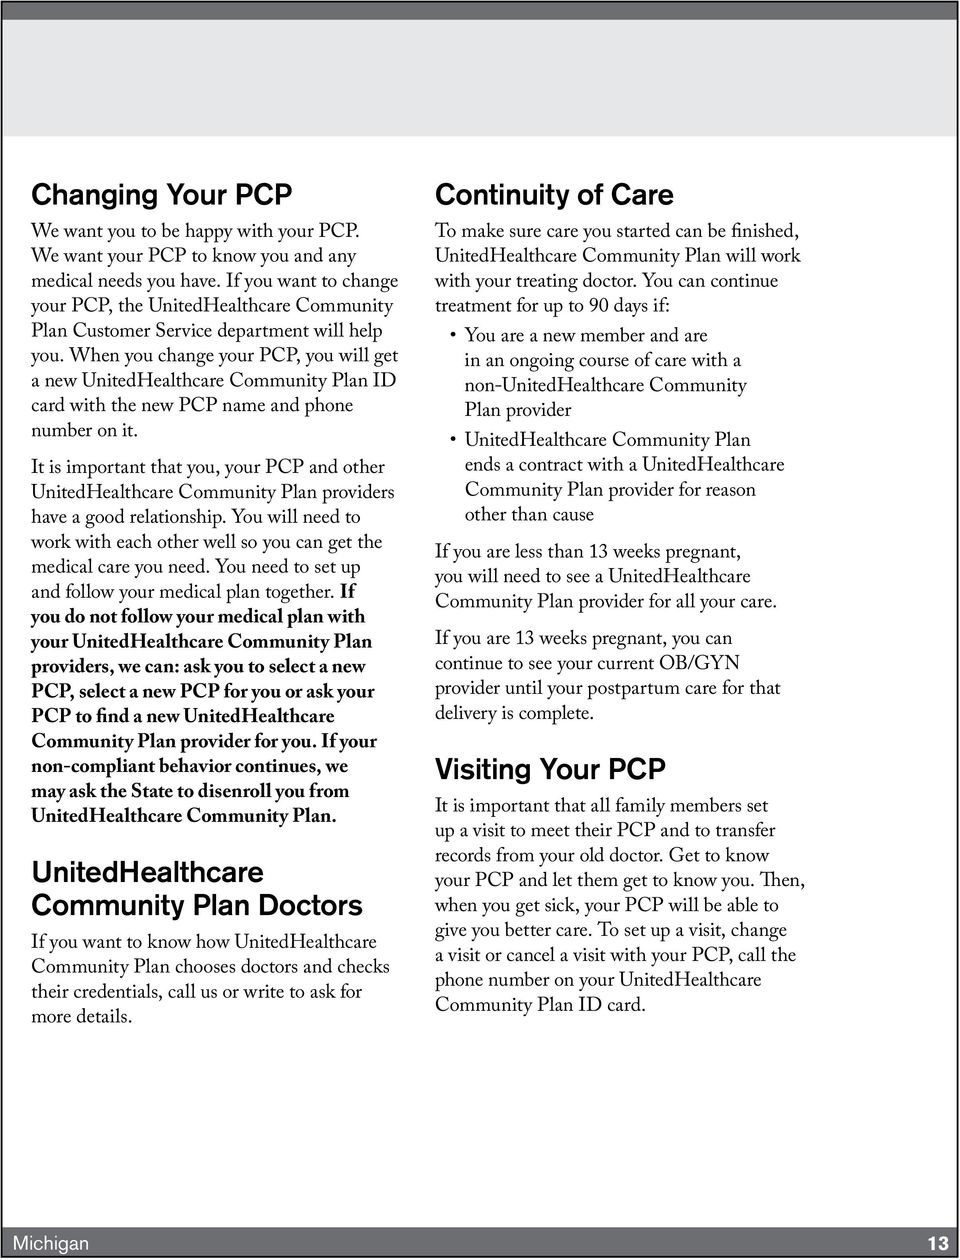 When you change your PCP, you will get a new UnitedHealthcare Community Plan ID card with the new PCP name and phone number on it.